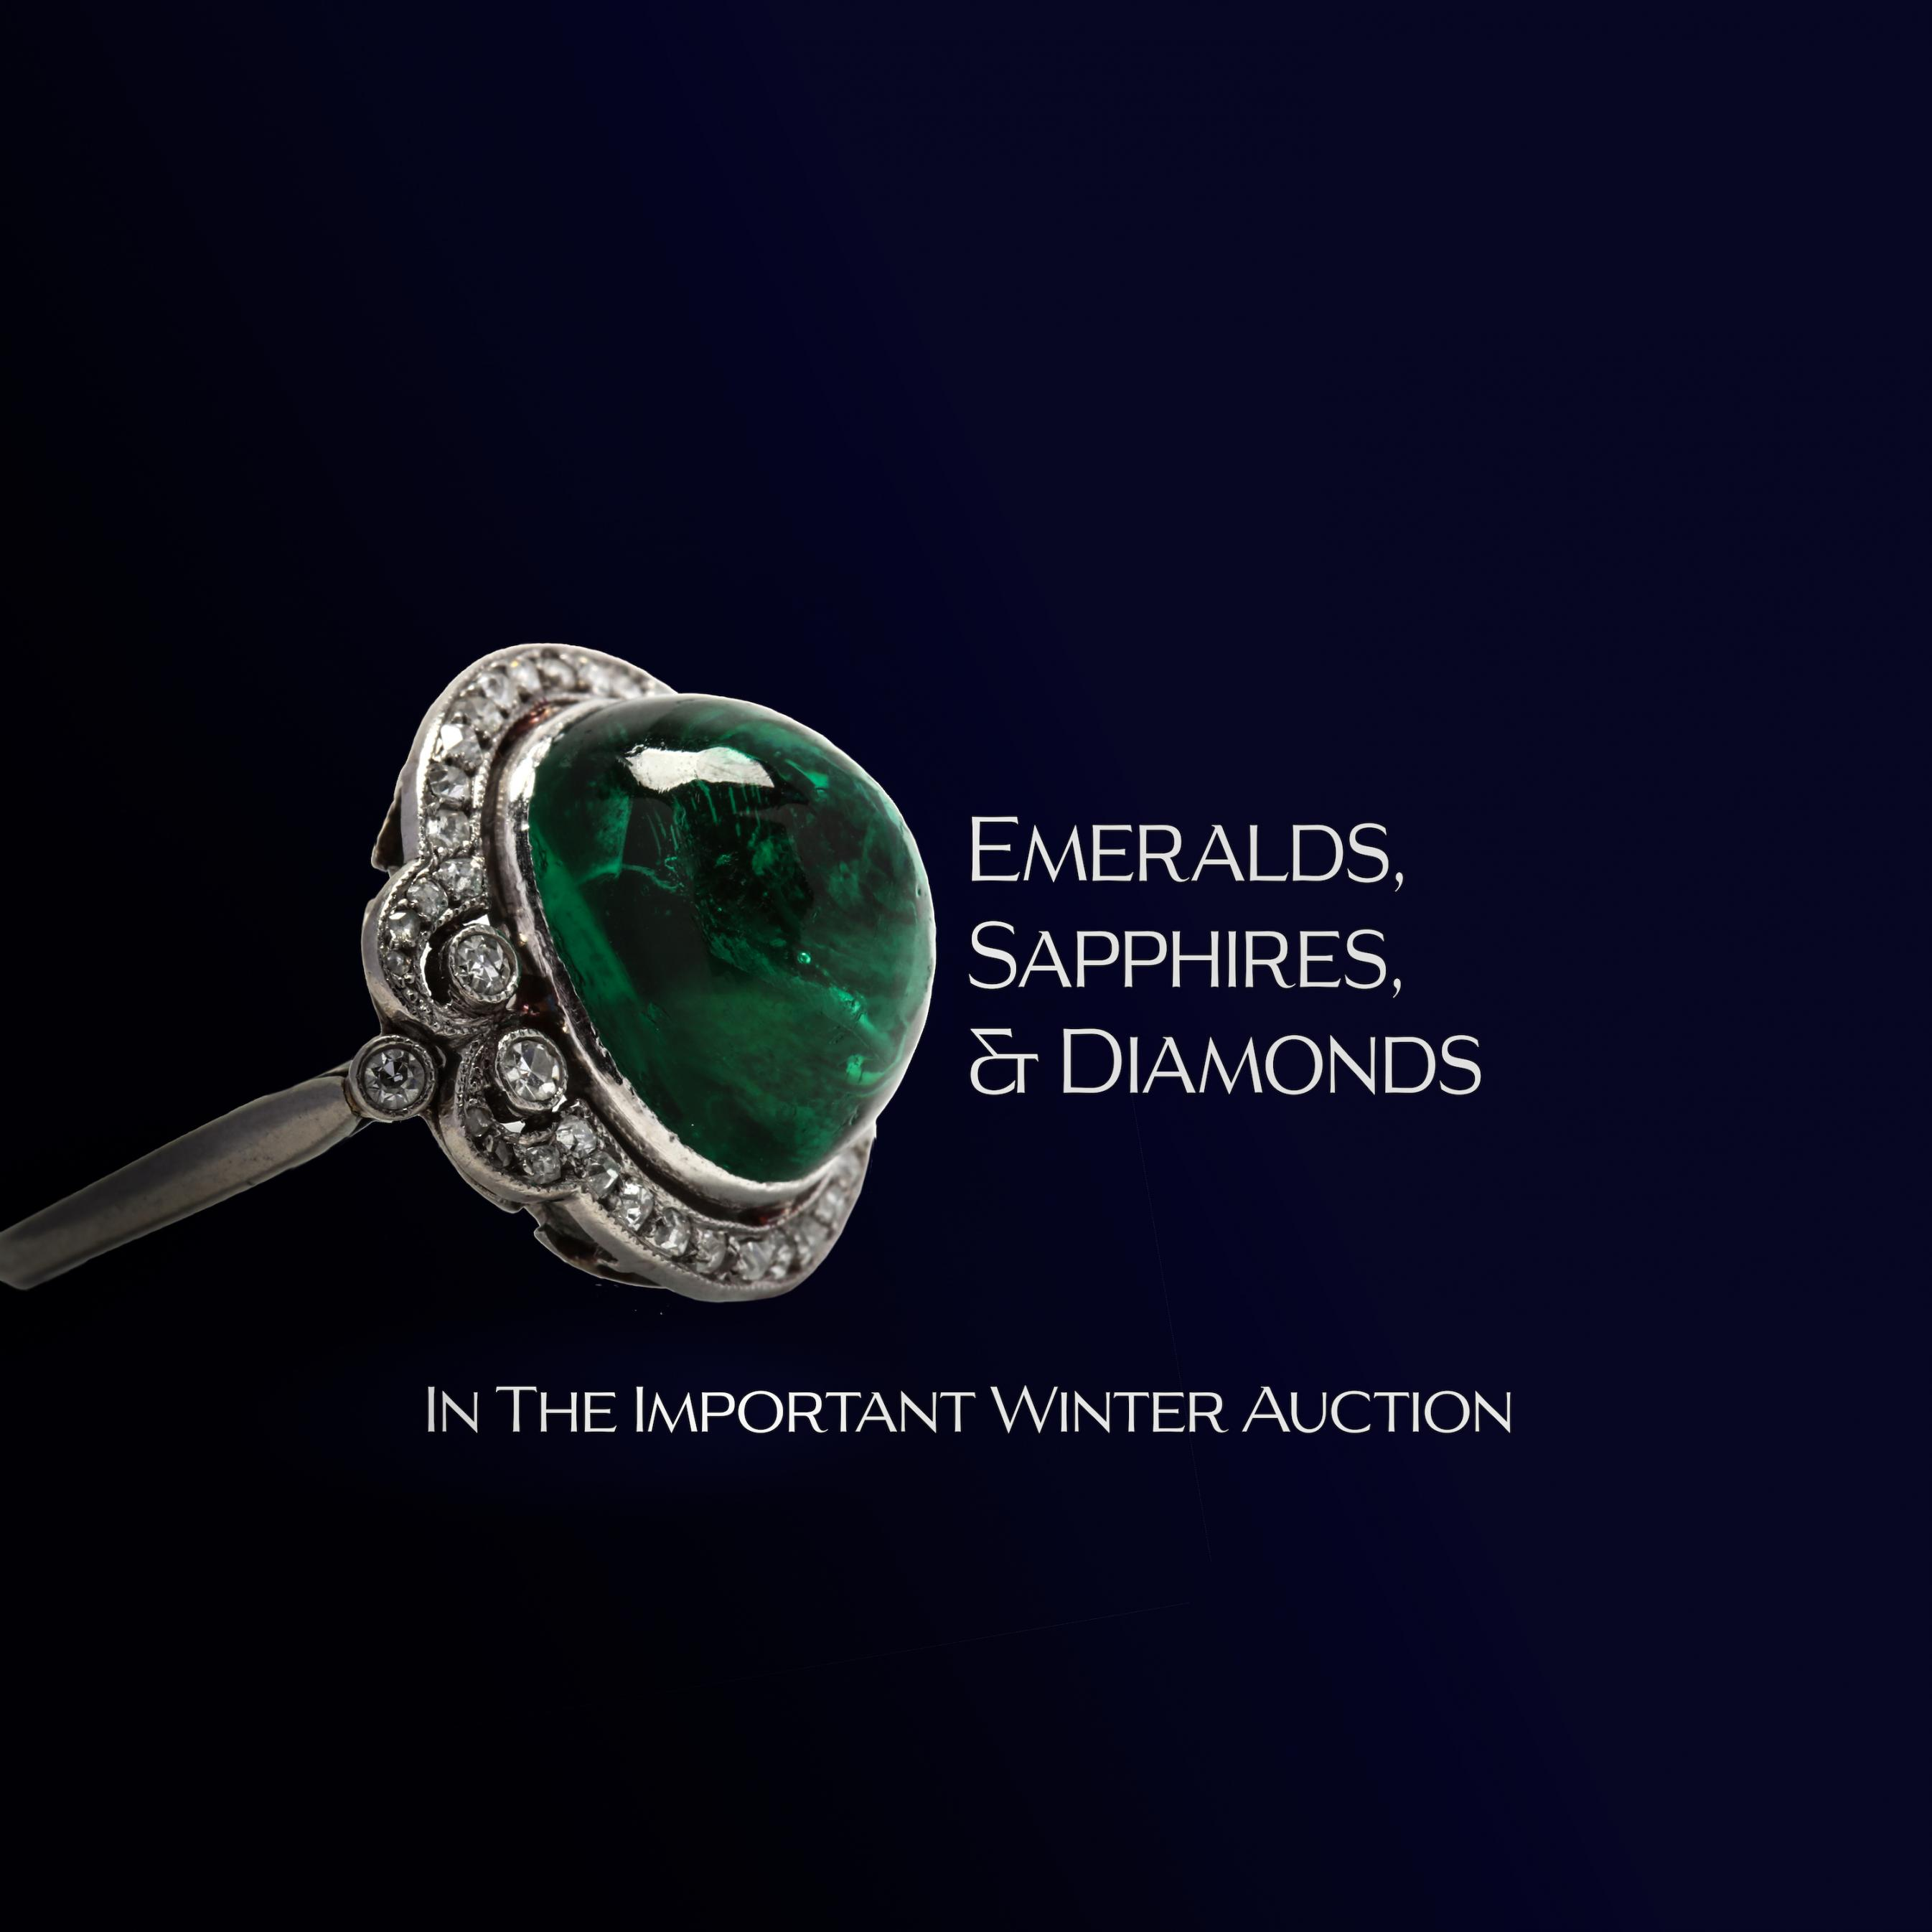 Emeralds, Sapphires, and Diamonds in The Important Winter Auction